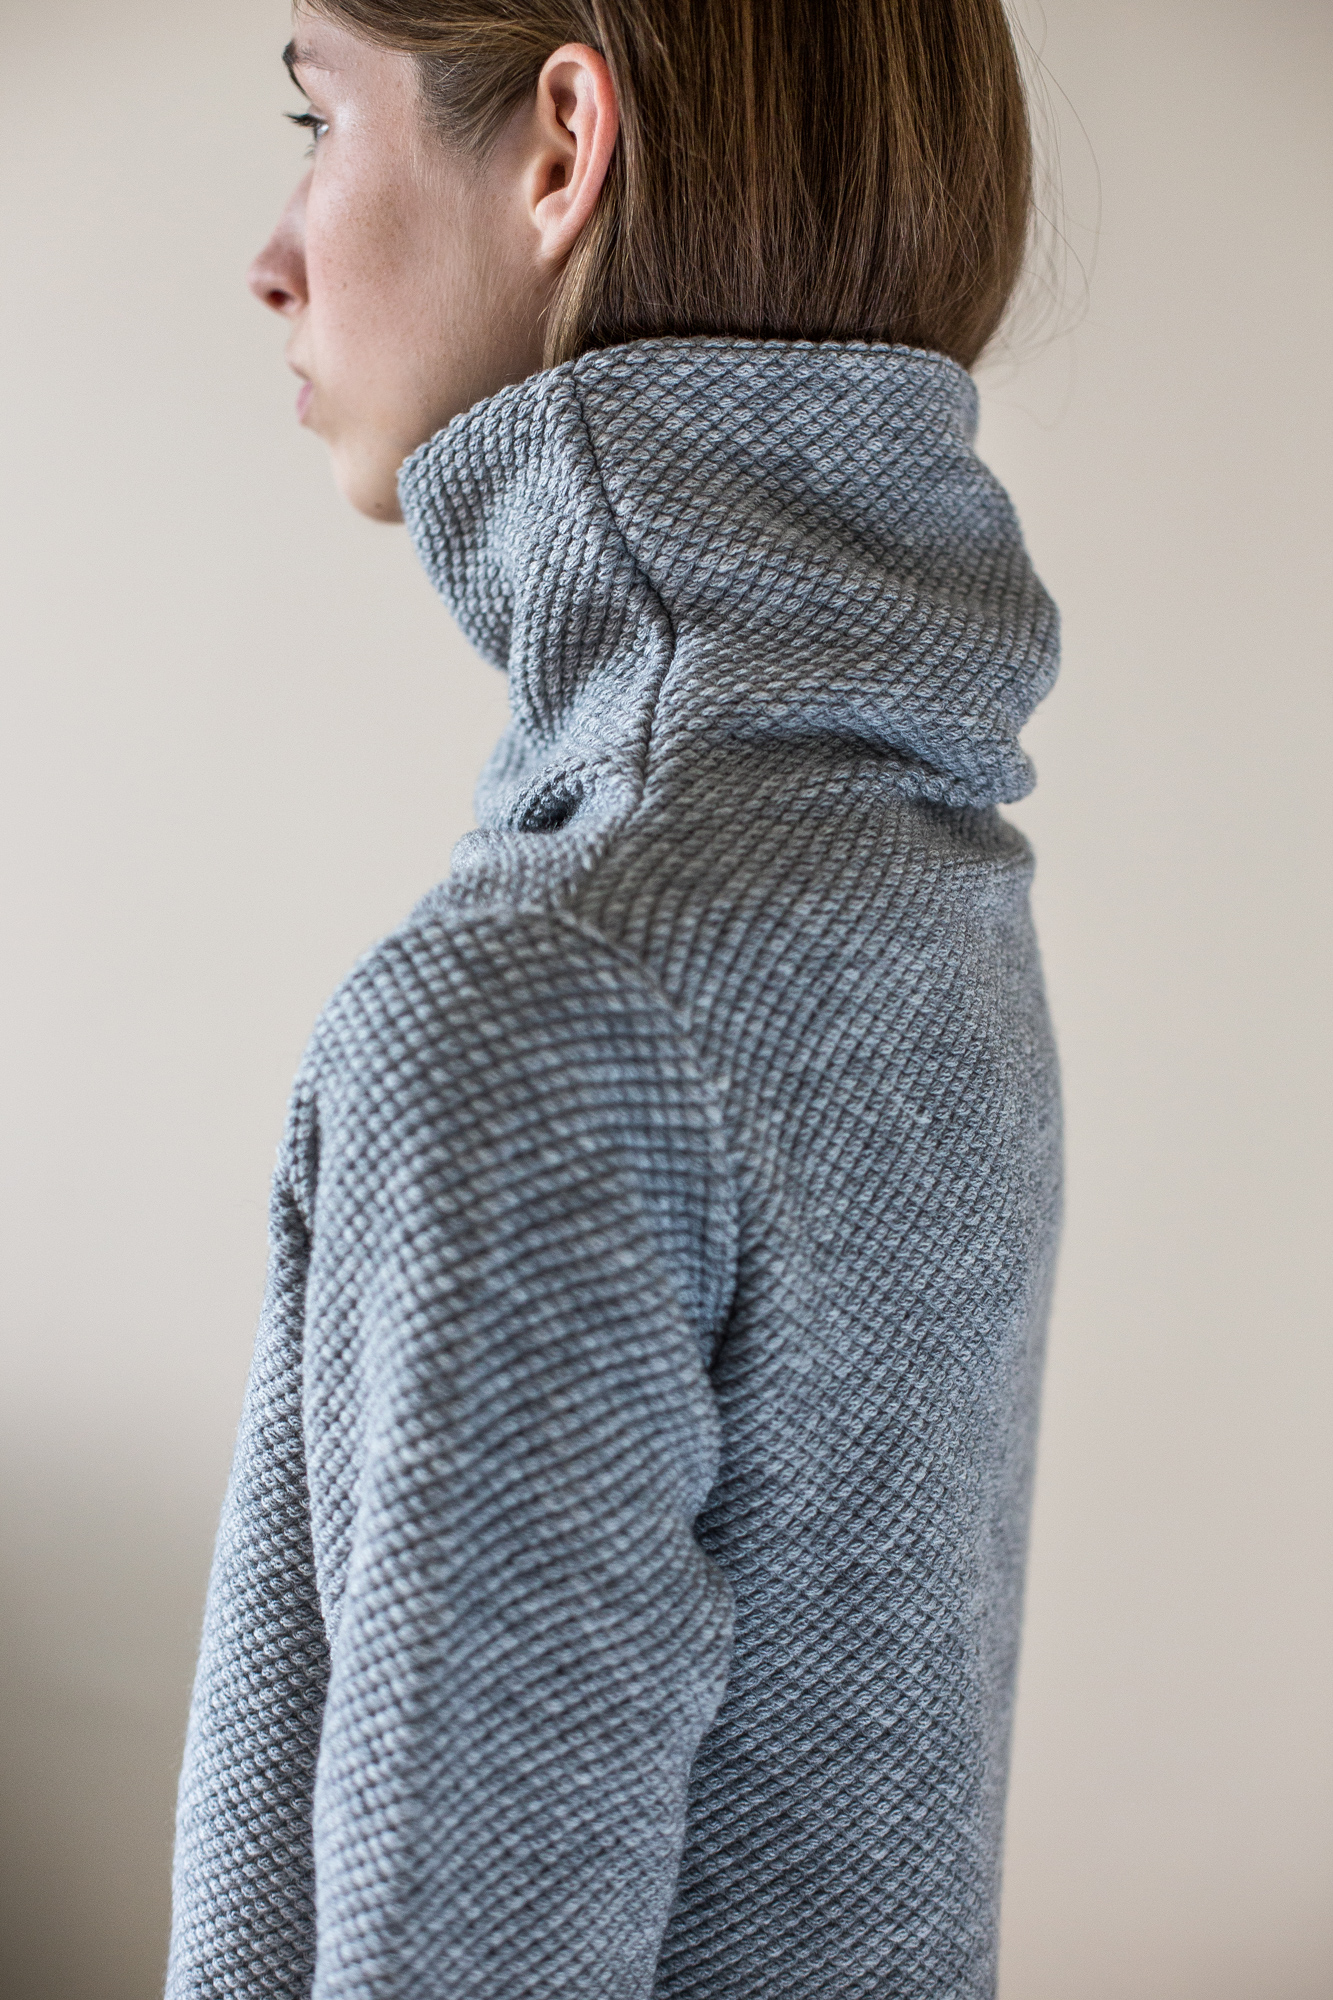 wearenotsisters_wrns_obstacle-sweater_04